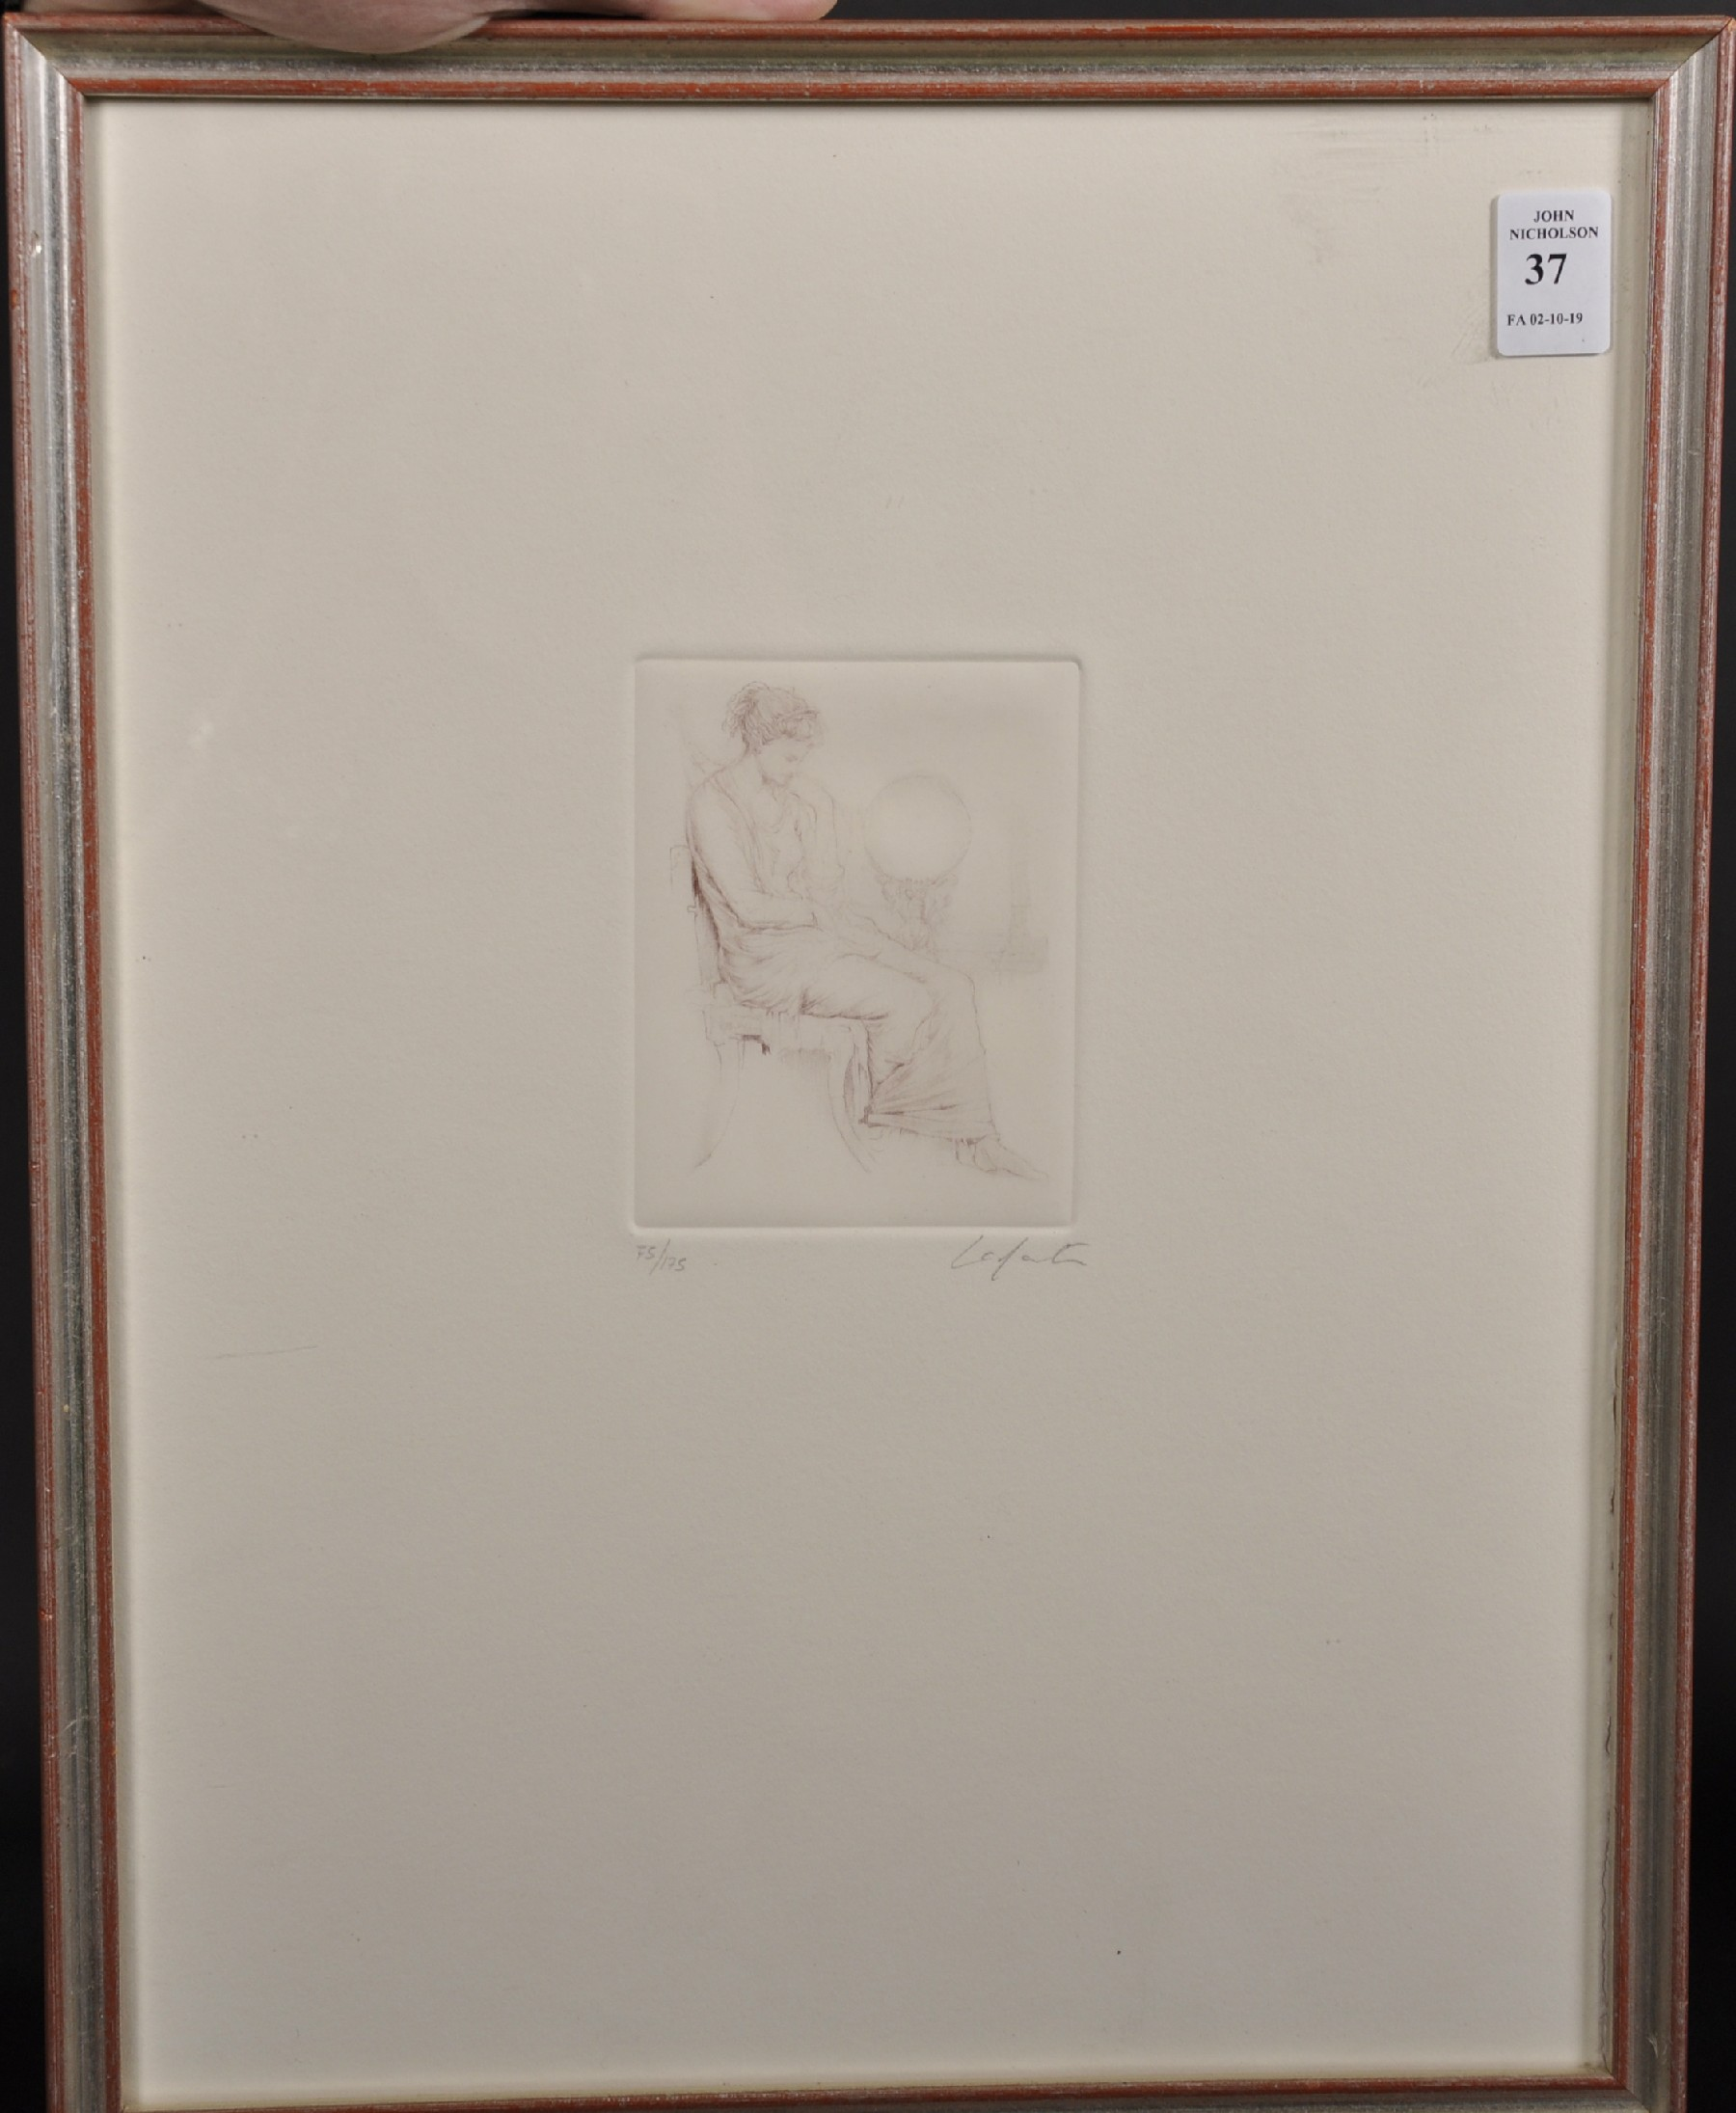 Laforte (20th Century) European. Study of a Seated Maiden, Etching, Indistinctly Signed and Numbered - Image 2 of 4